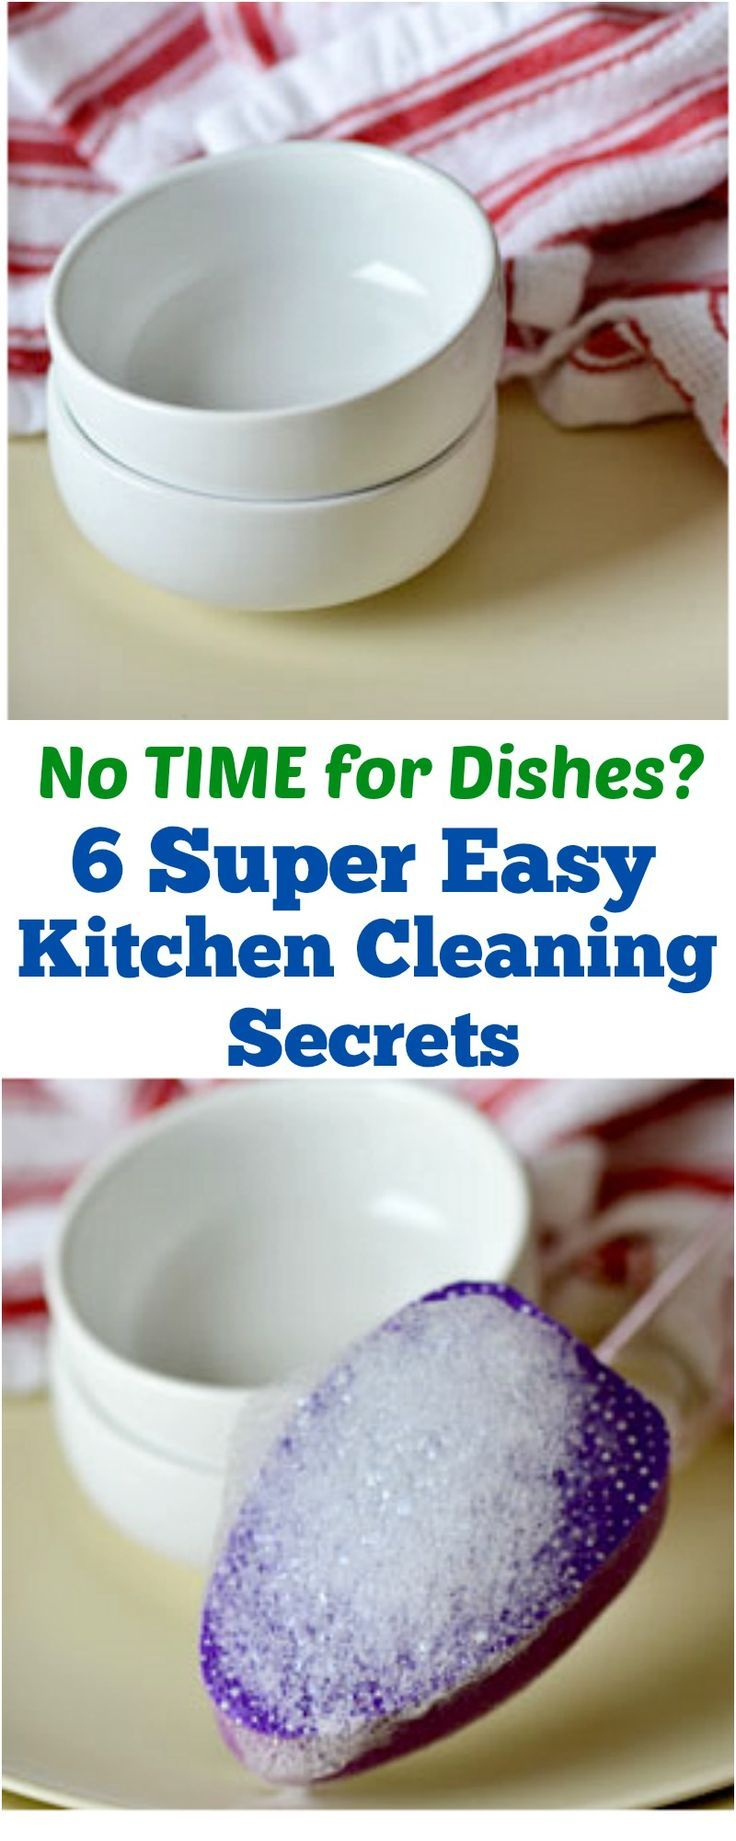 No Time for Dishes? 7 Super Easy Kitchen Cleaning Secrets